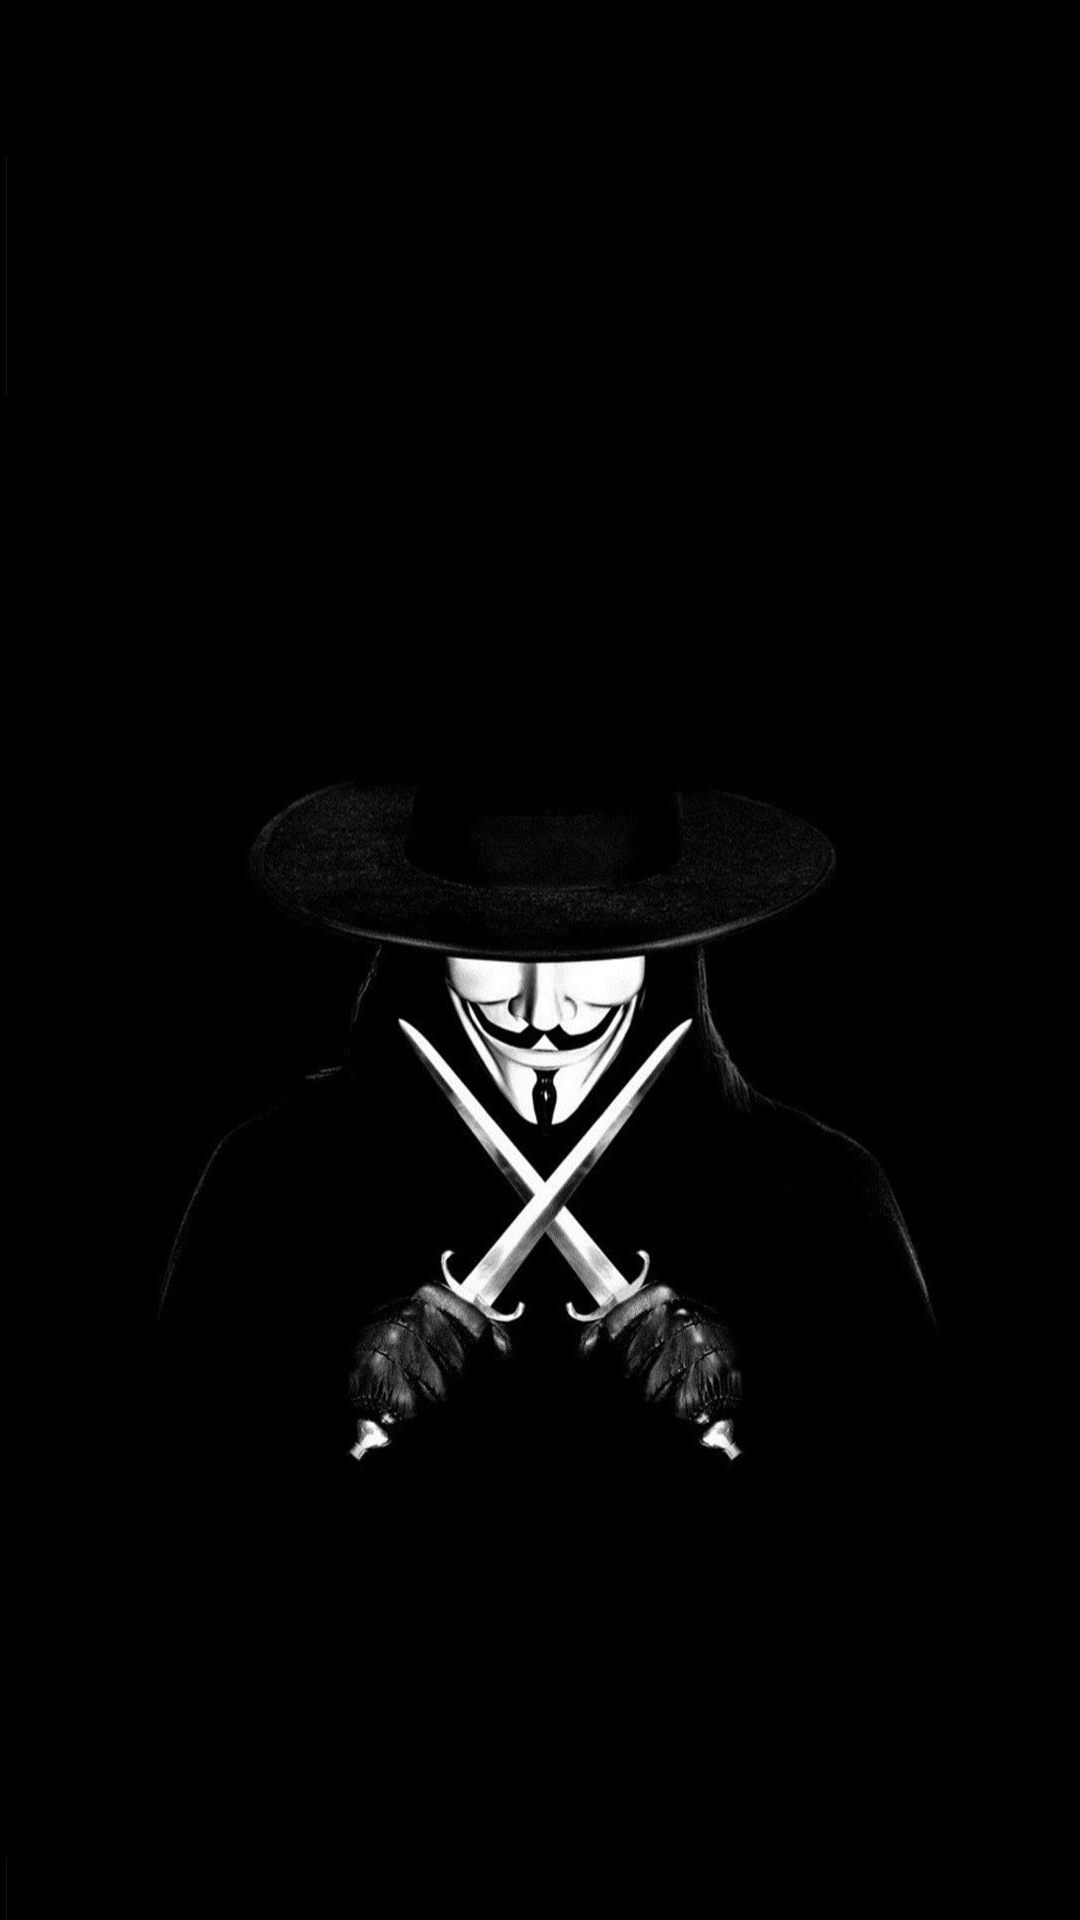 Anonymous Wallpaper Hd For Iphone V For Vendetta Vendetta